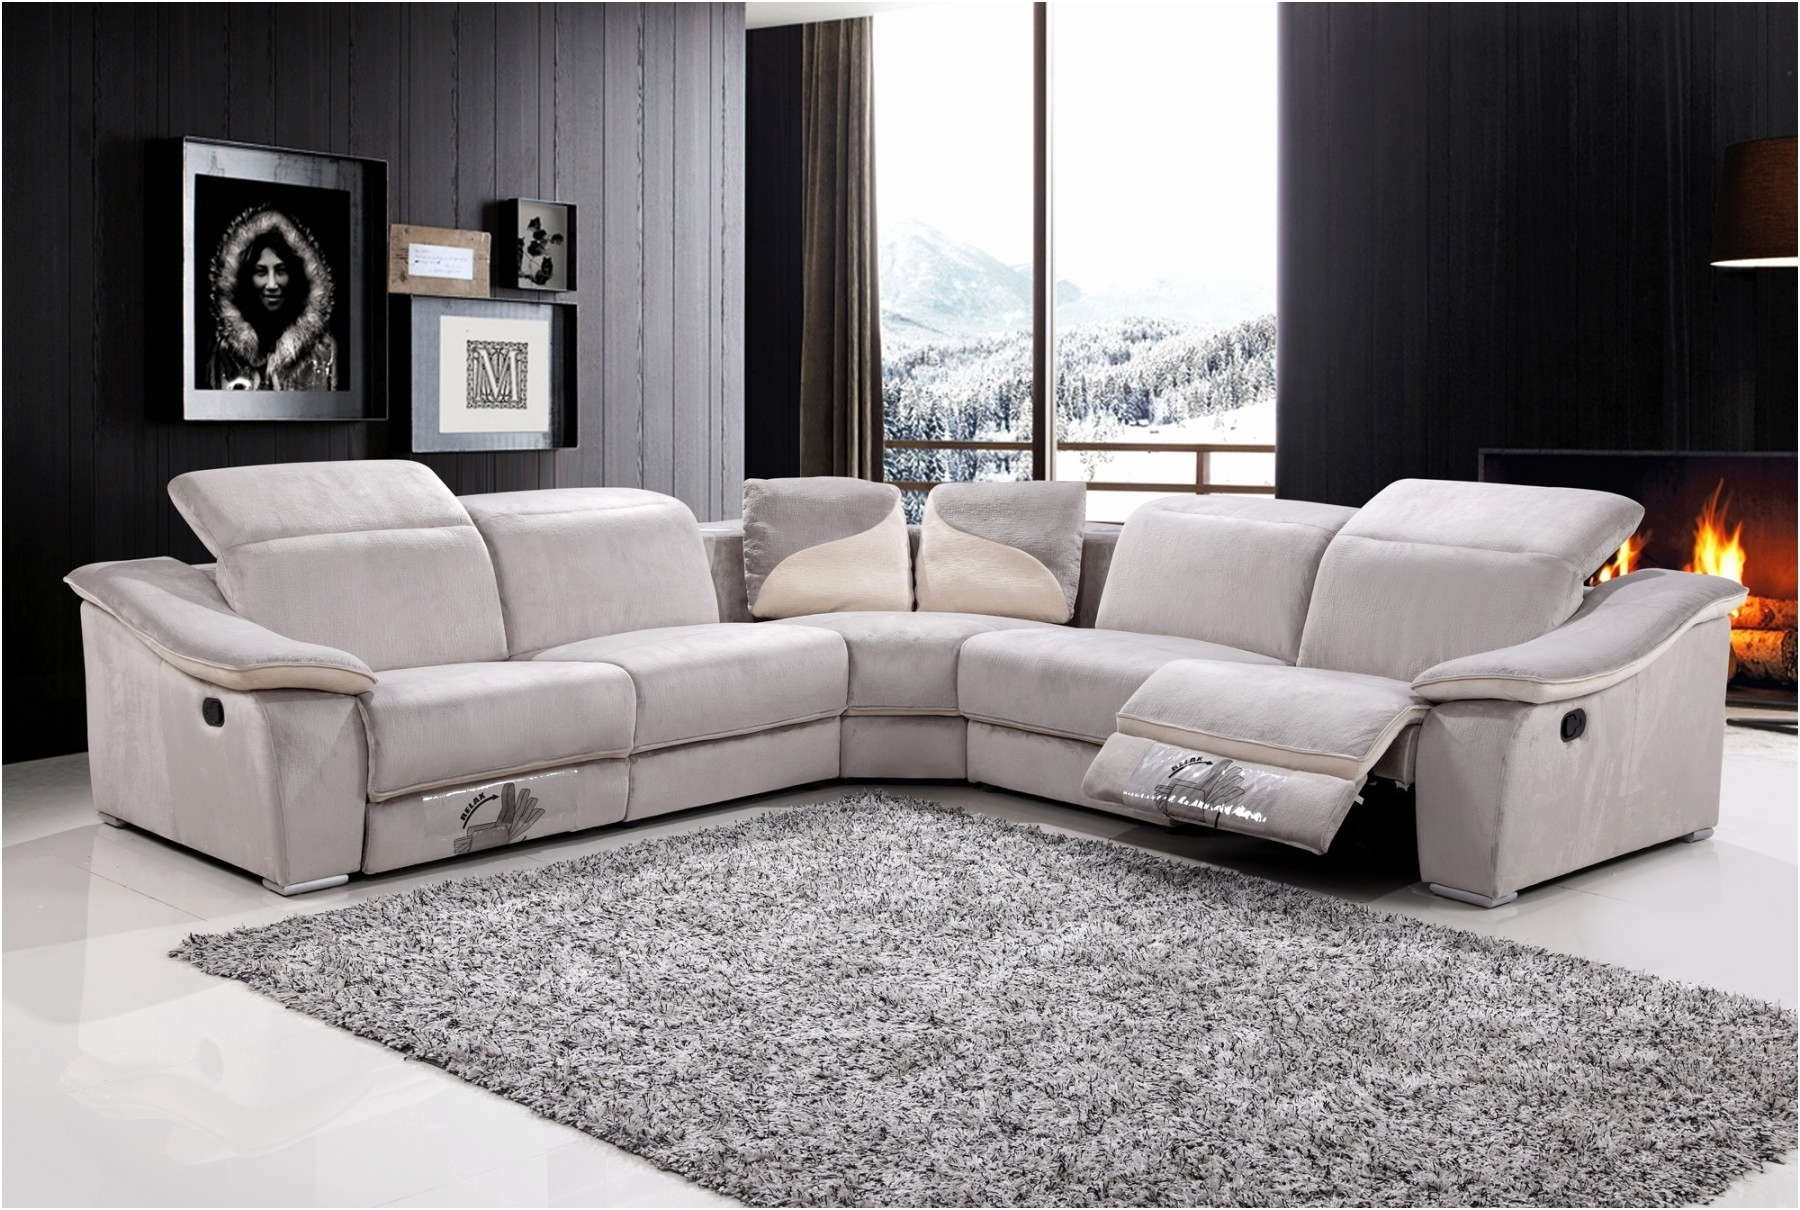 Bay Area Sofa Fresh The Most Popular Best Quality Sectional Sofa 95 With Regard To Quality Sectional Sofas (Image 2 of 10)